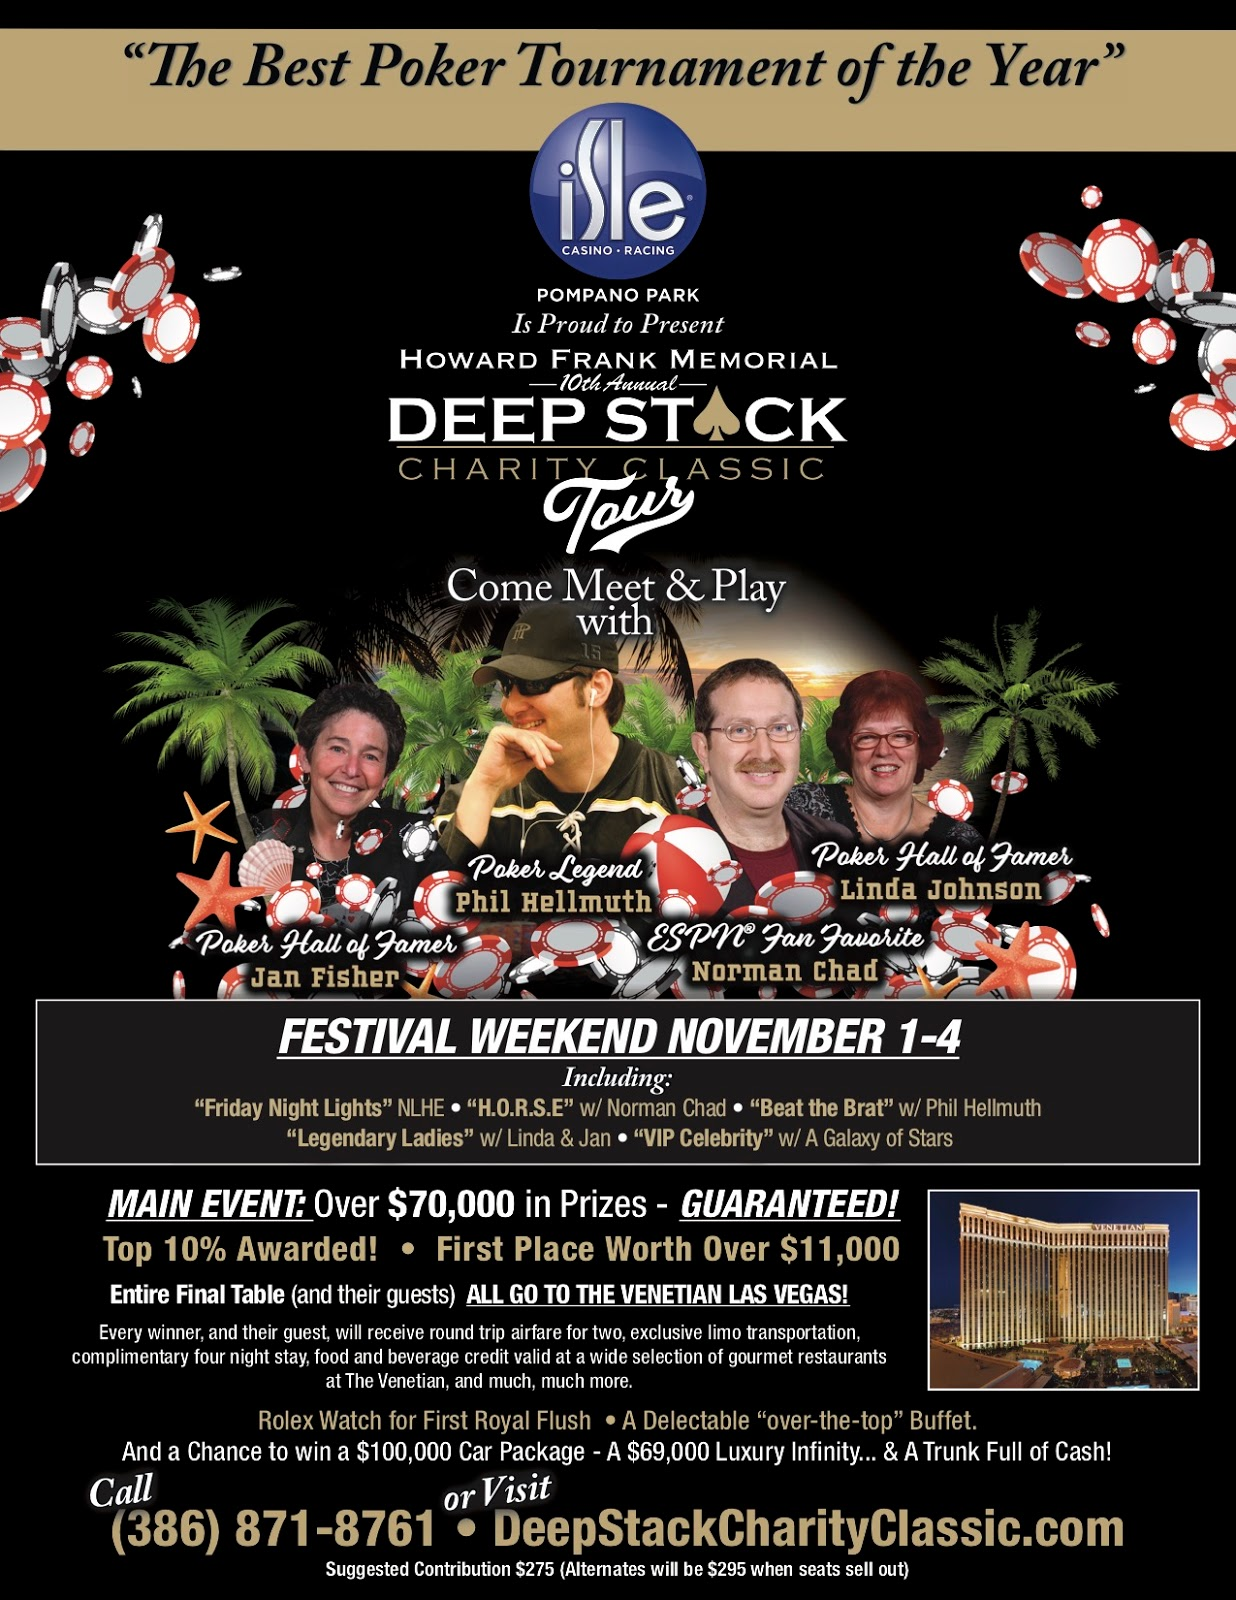 Isle Casino Poker Promotions